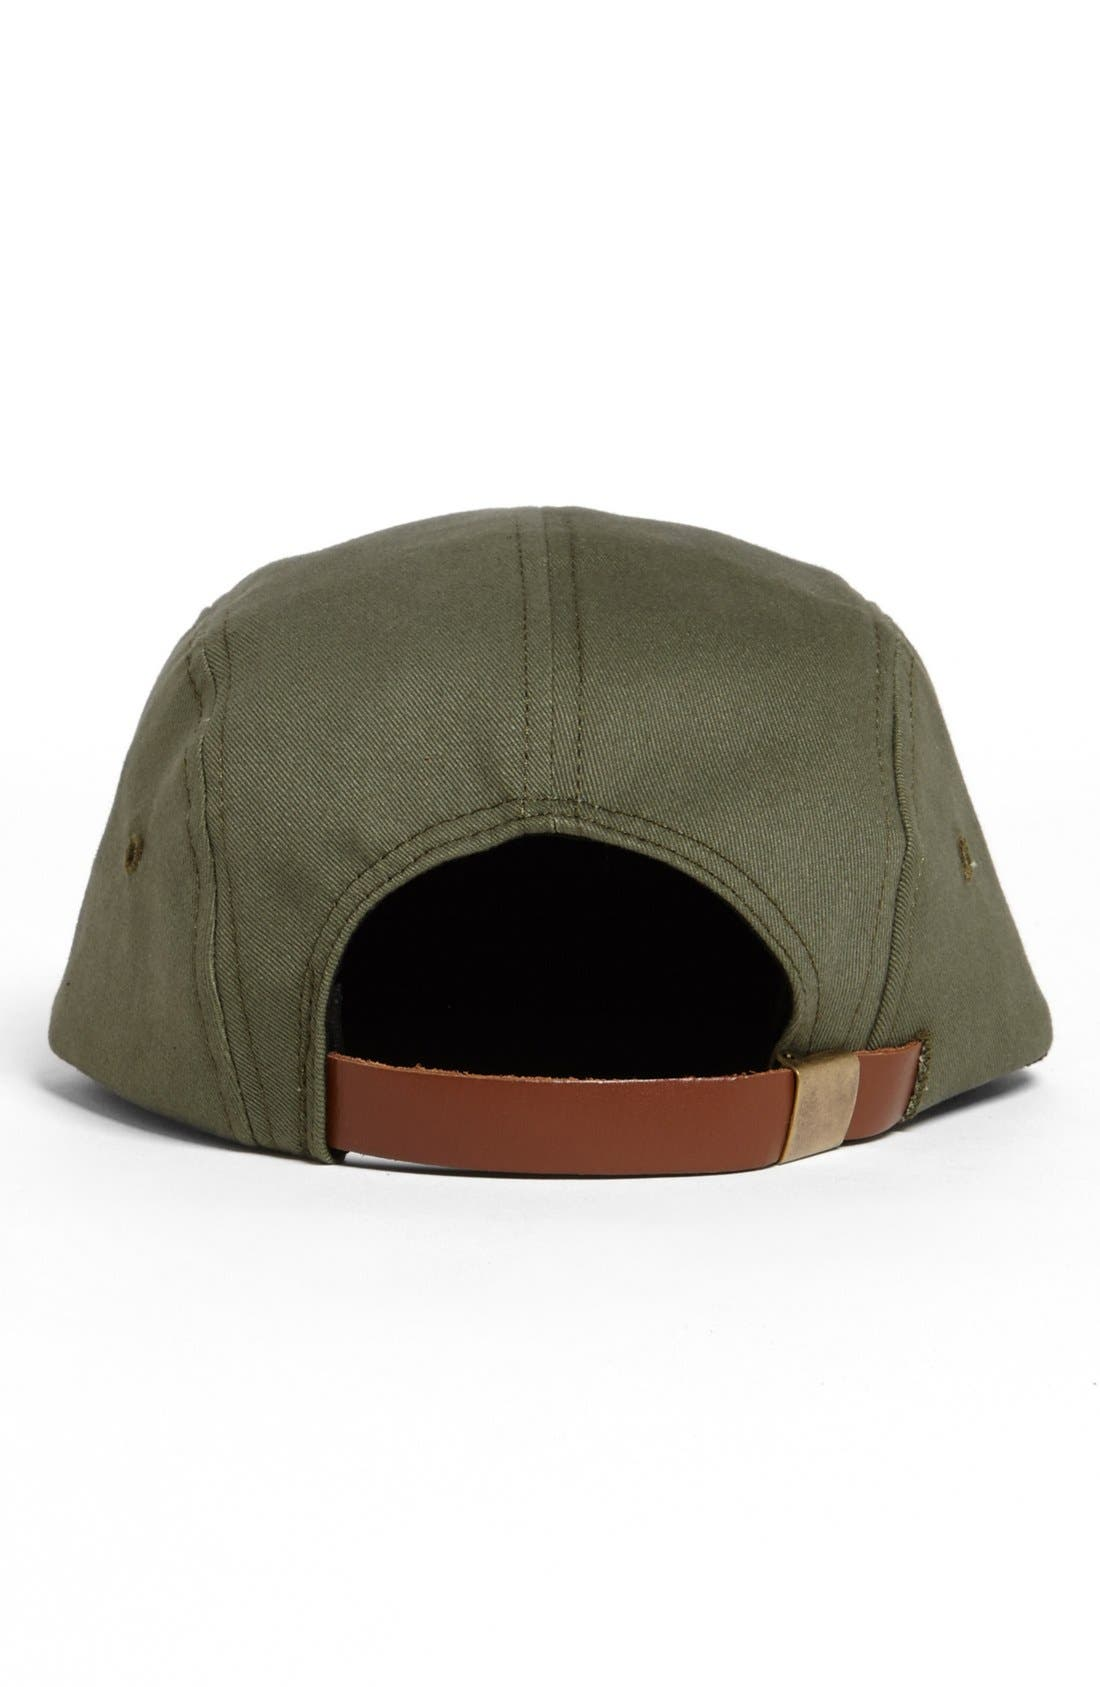 Alternate Image 2  - Katin 'Jungle' Five Panel Cap